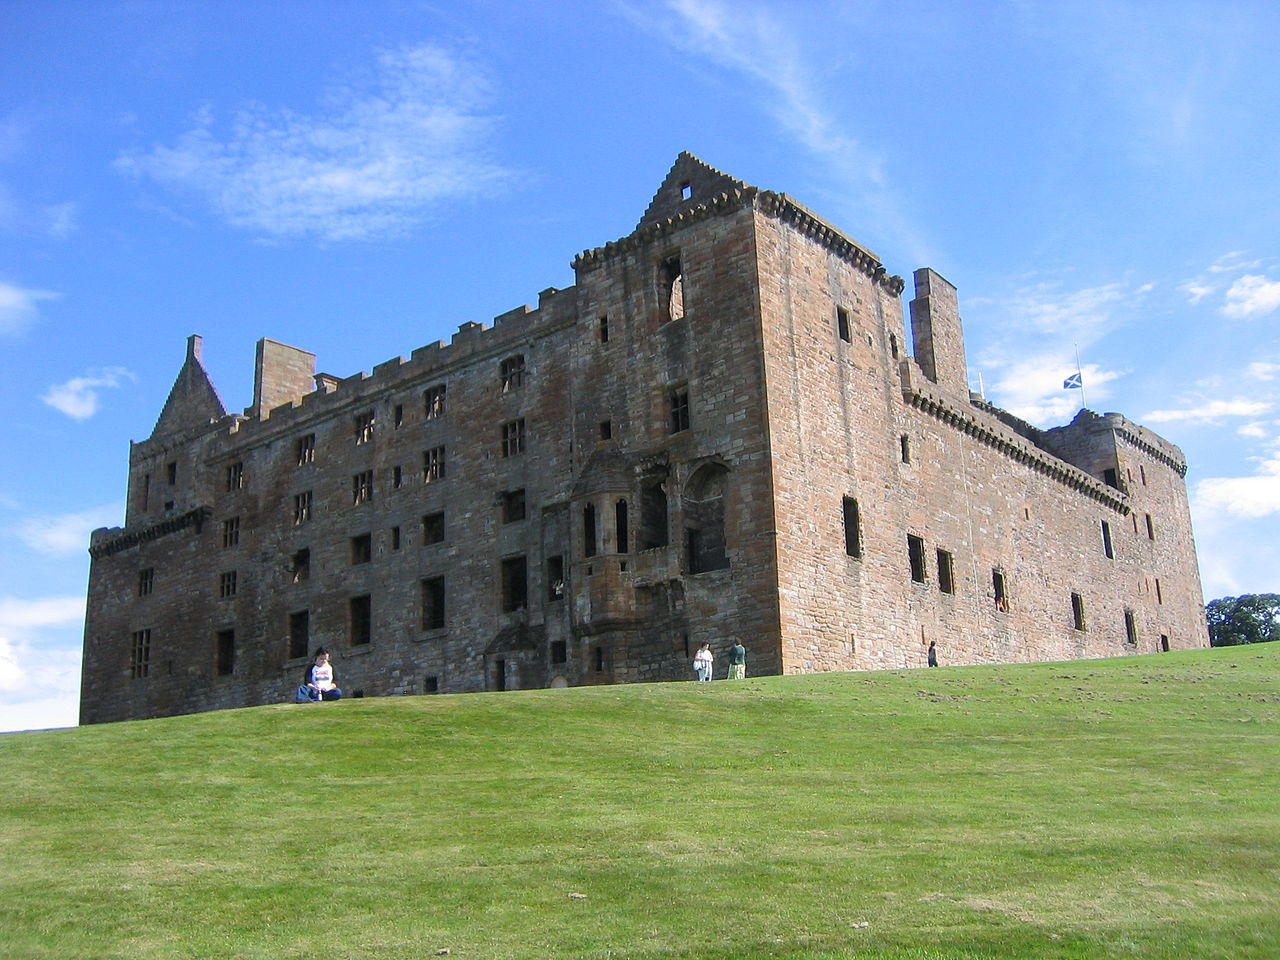 CASTLE OF LINLITHGOW